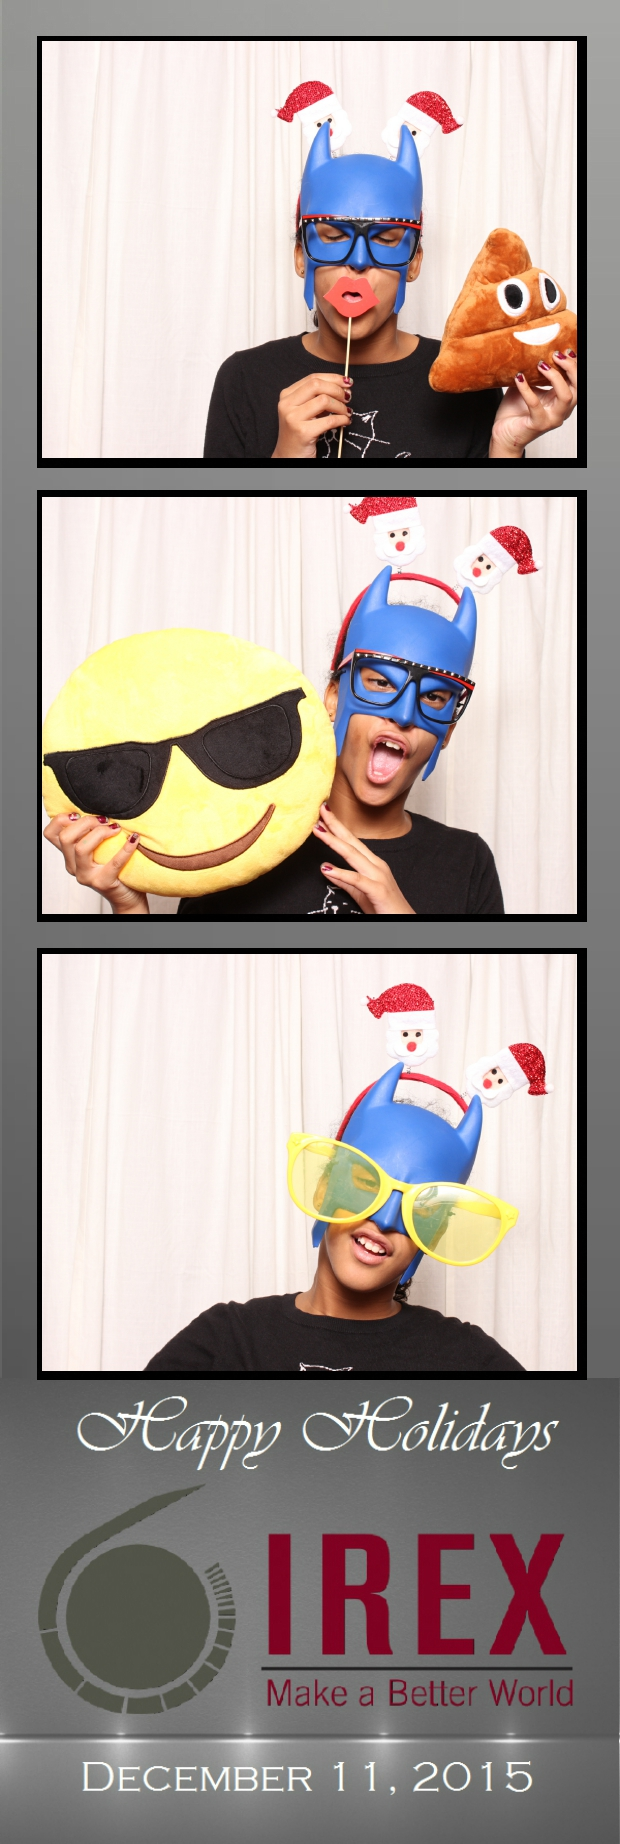 Guest House Events Photo Booth Strips IREX (28).jpg